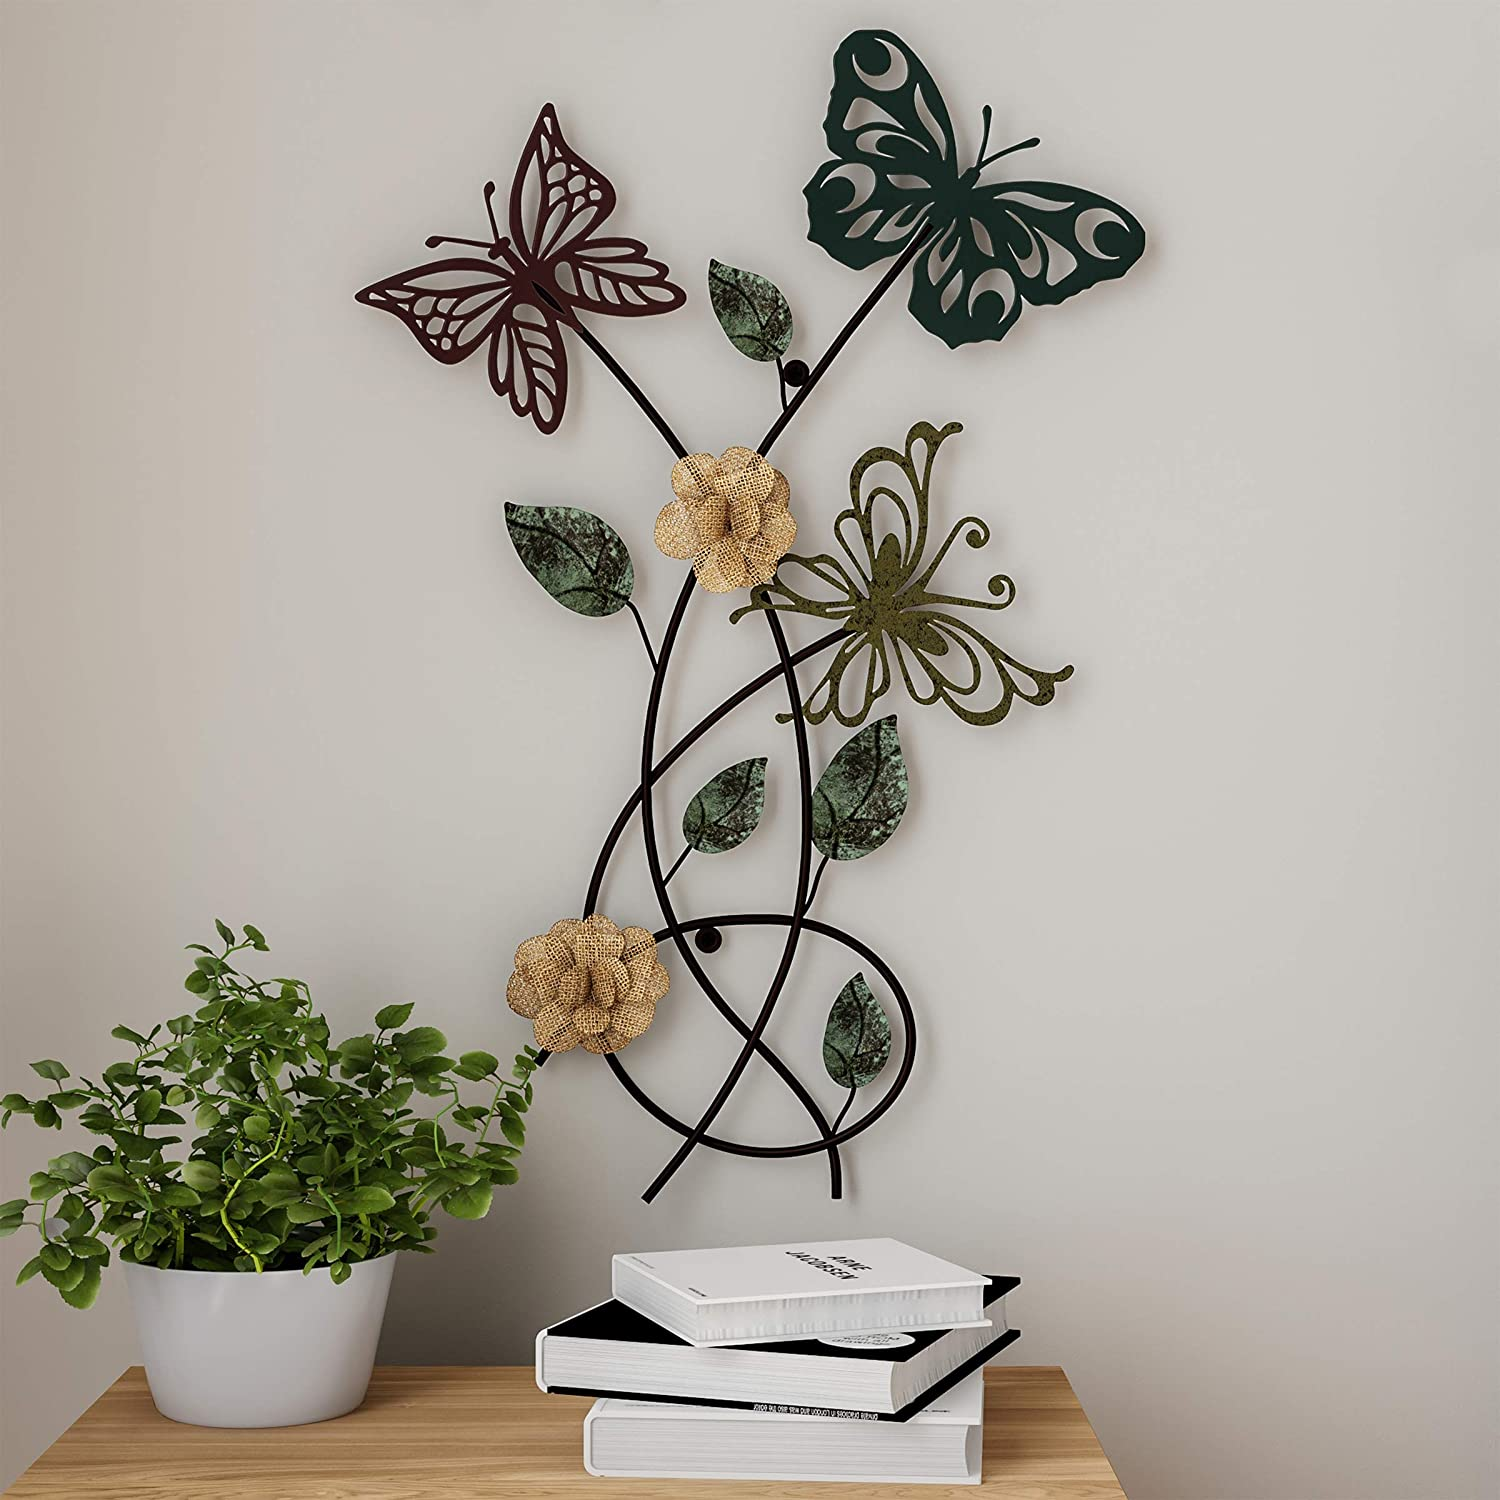 Lavish Home Garden Metal Wall Art Hand Painted 3D Butterflies/Flowers for Modern Farmhouse Rustic Home or Office Decor